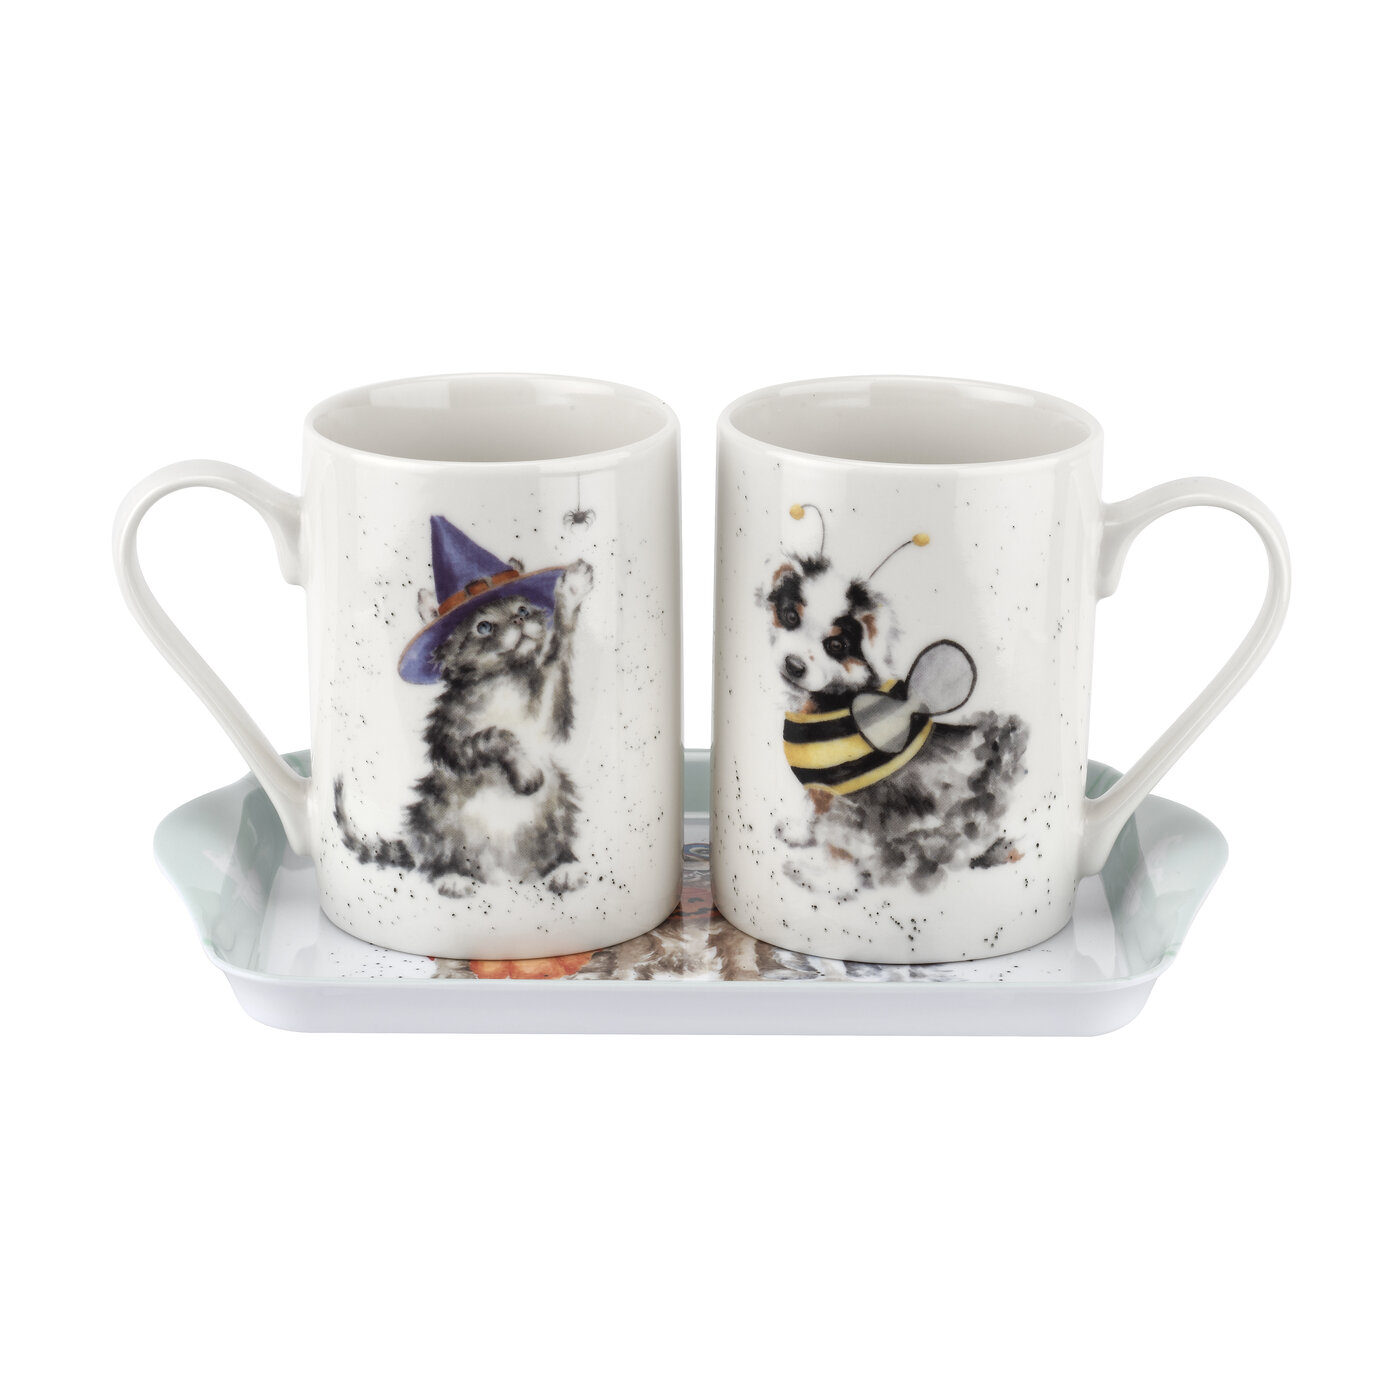 Pimpernel Wrendale Designs 3 Piece Mug & Tray Set (Trick or Treat) image number 0